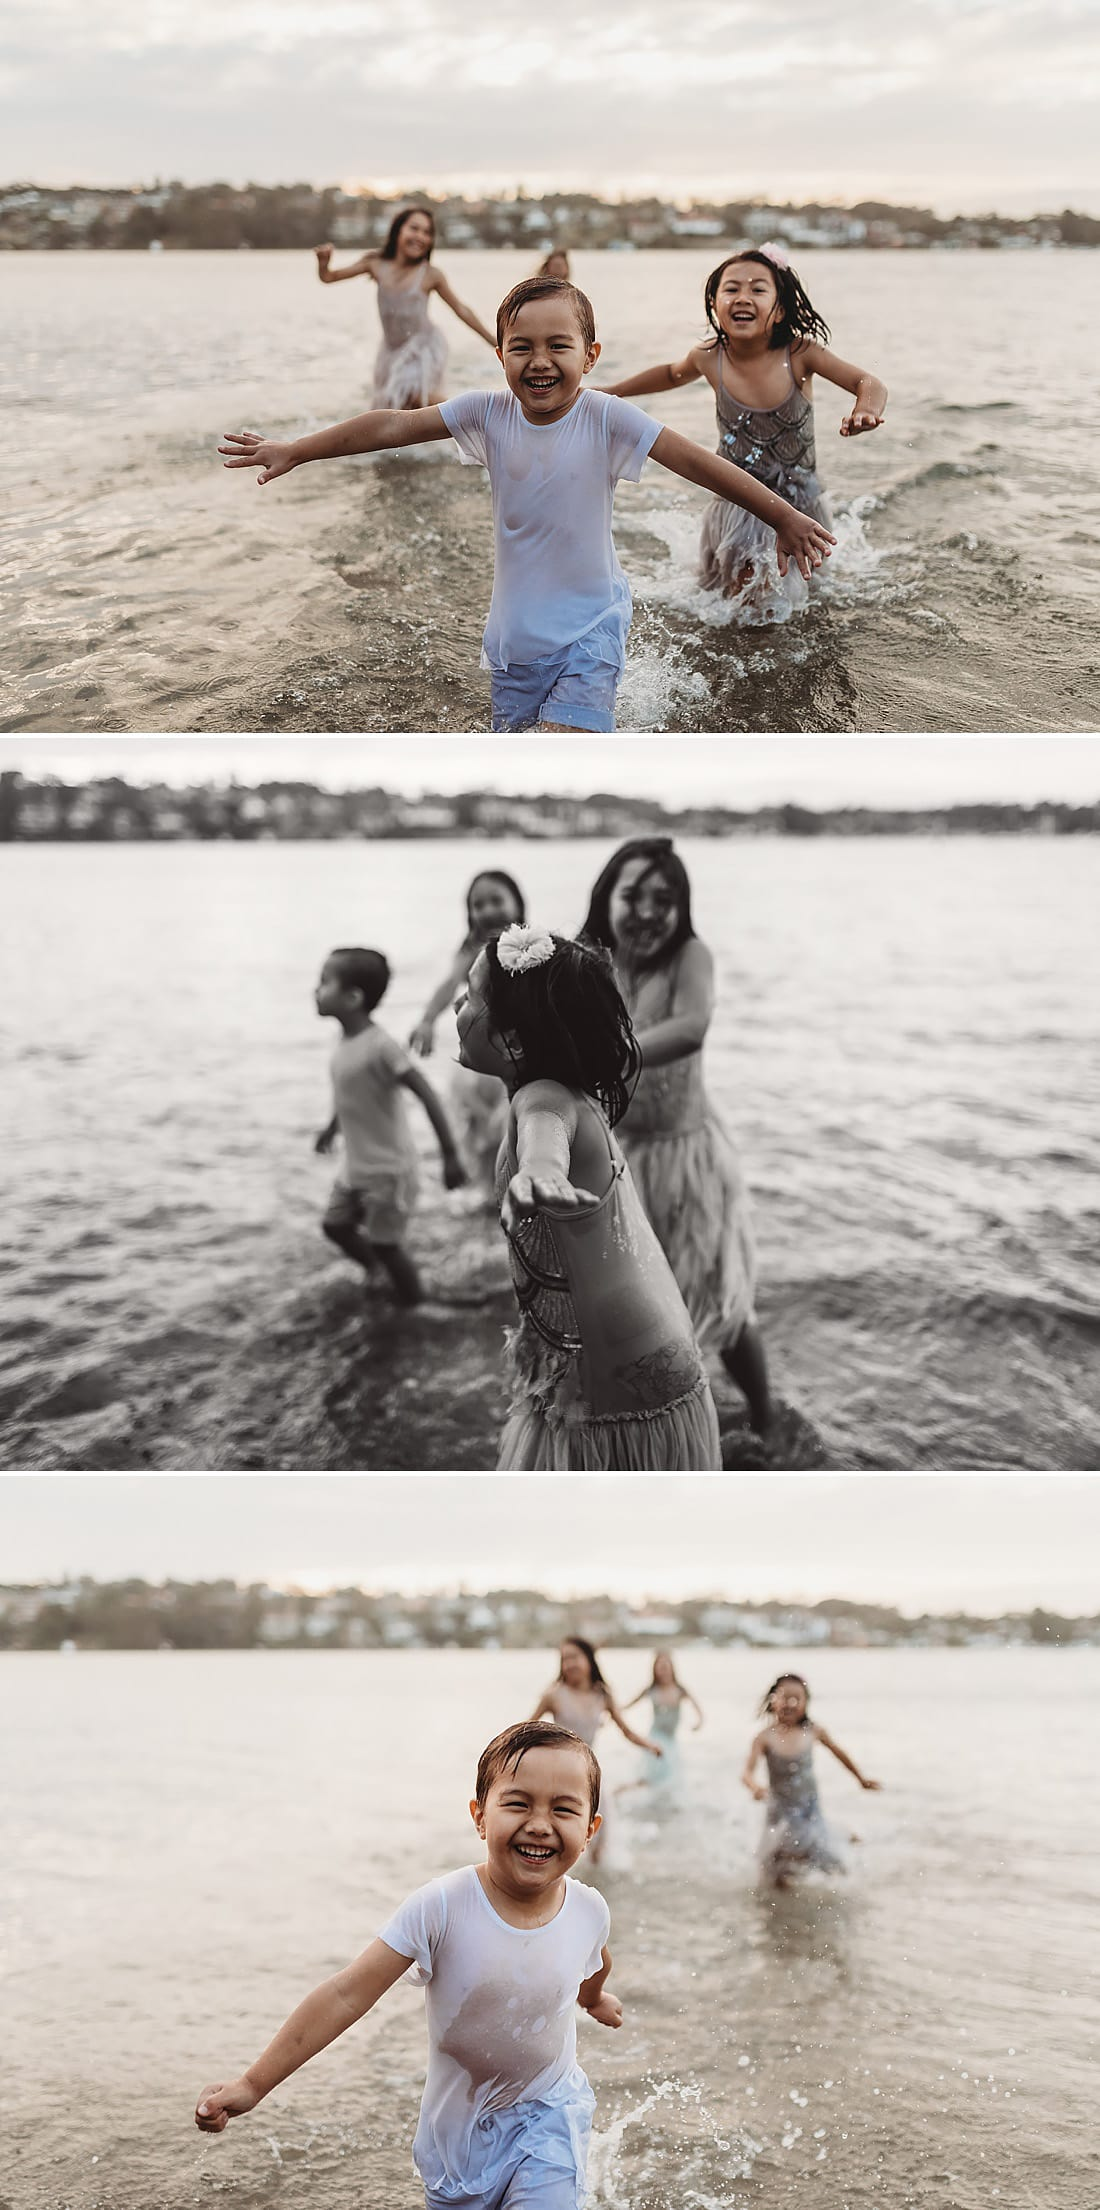 Sydney-fun-family-photography-cronulla